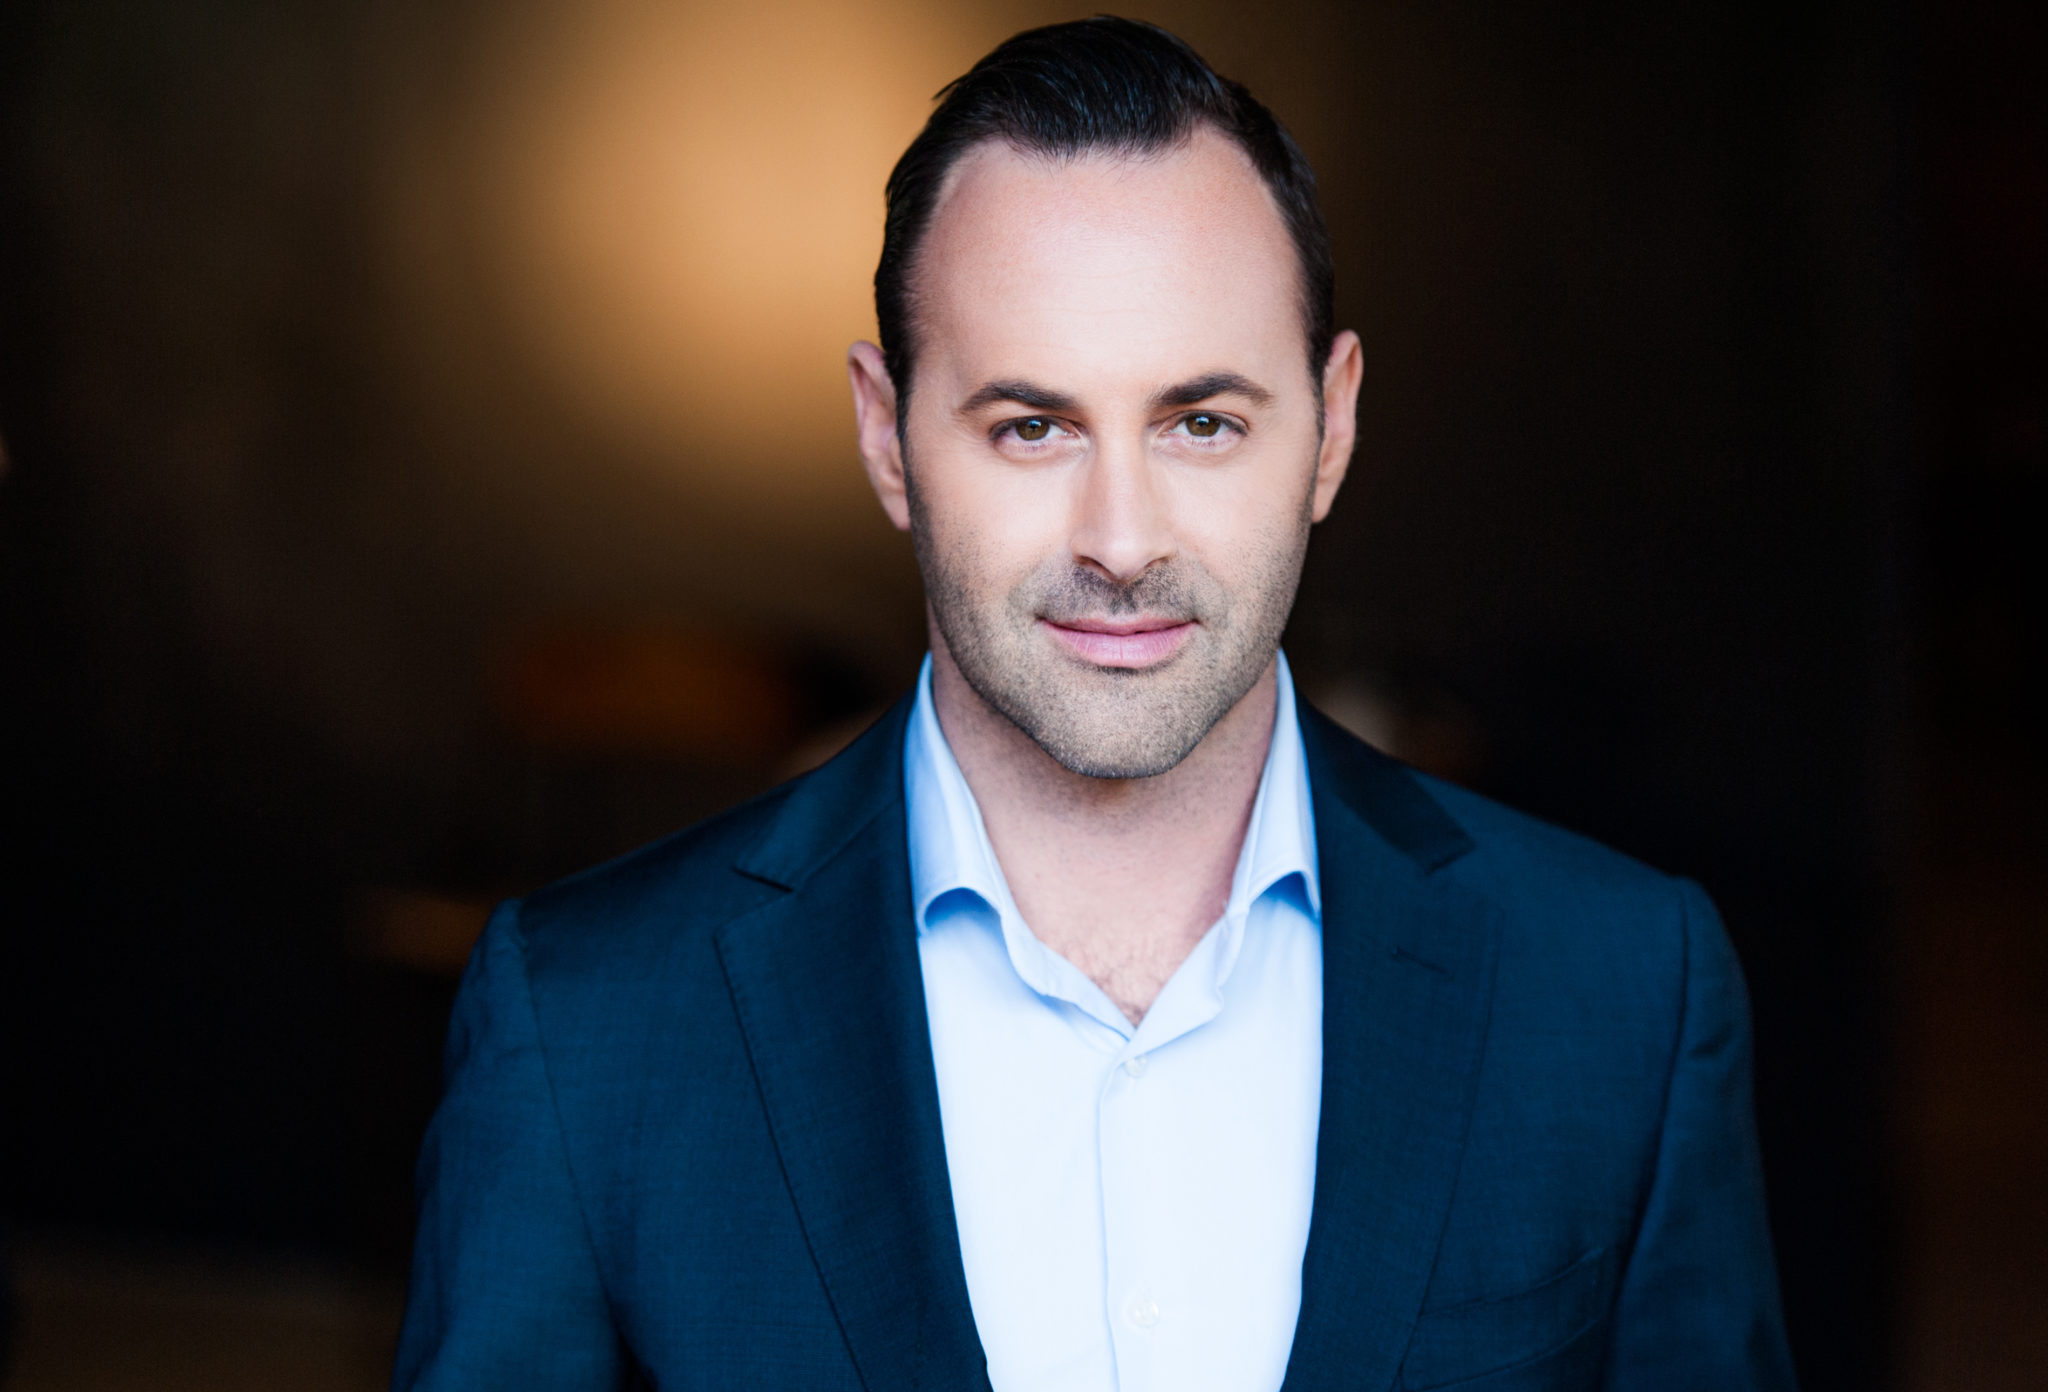 Ben Bacal of Rodeo Realty